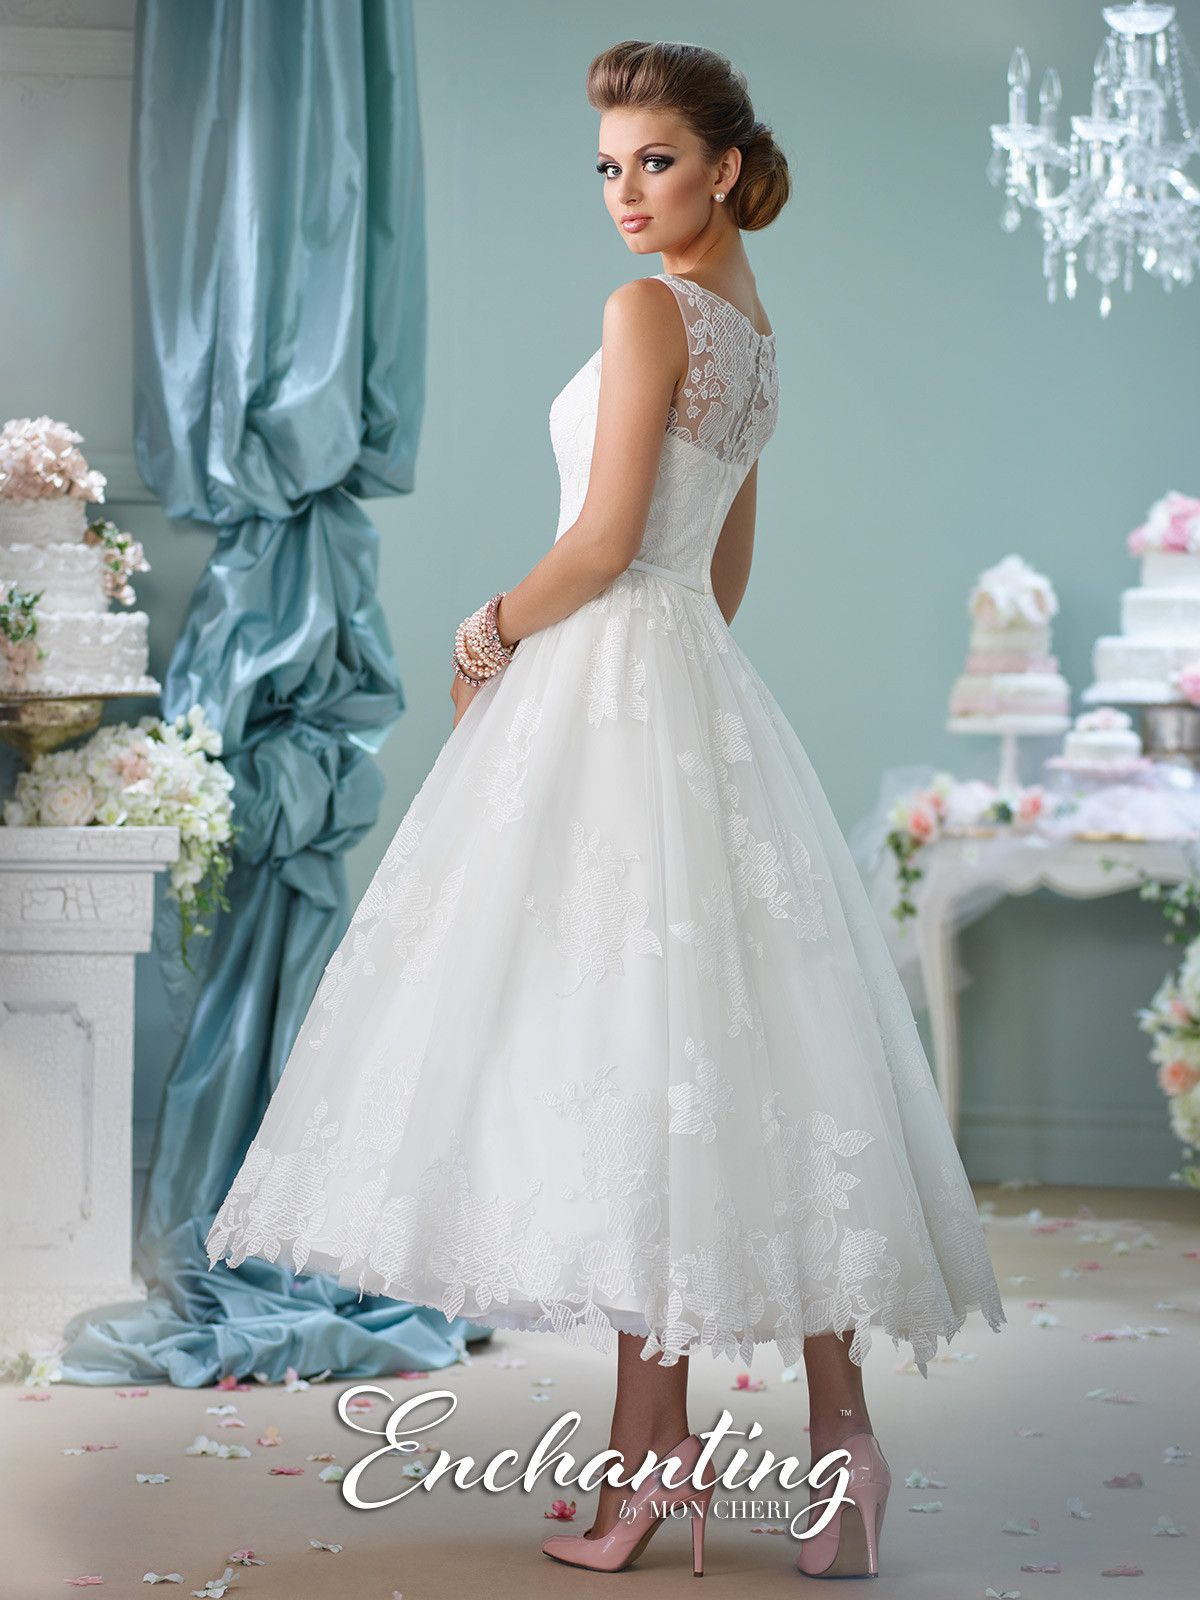 Enchanting - 116136 - All Dressed Up, Bridal Gown | Enchanted ...